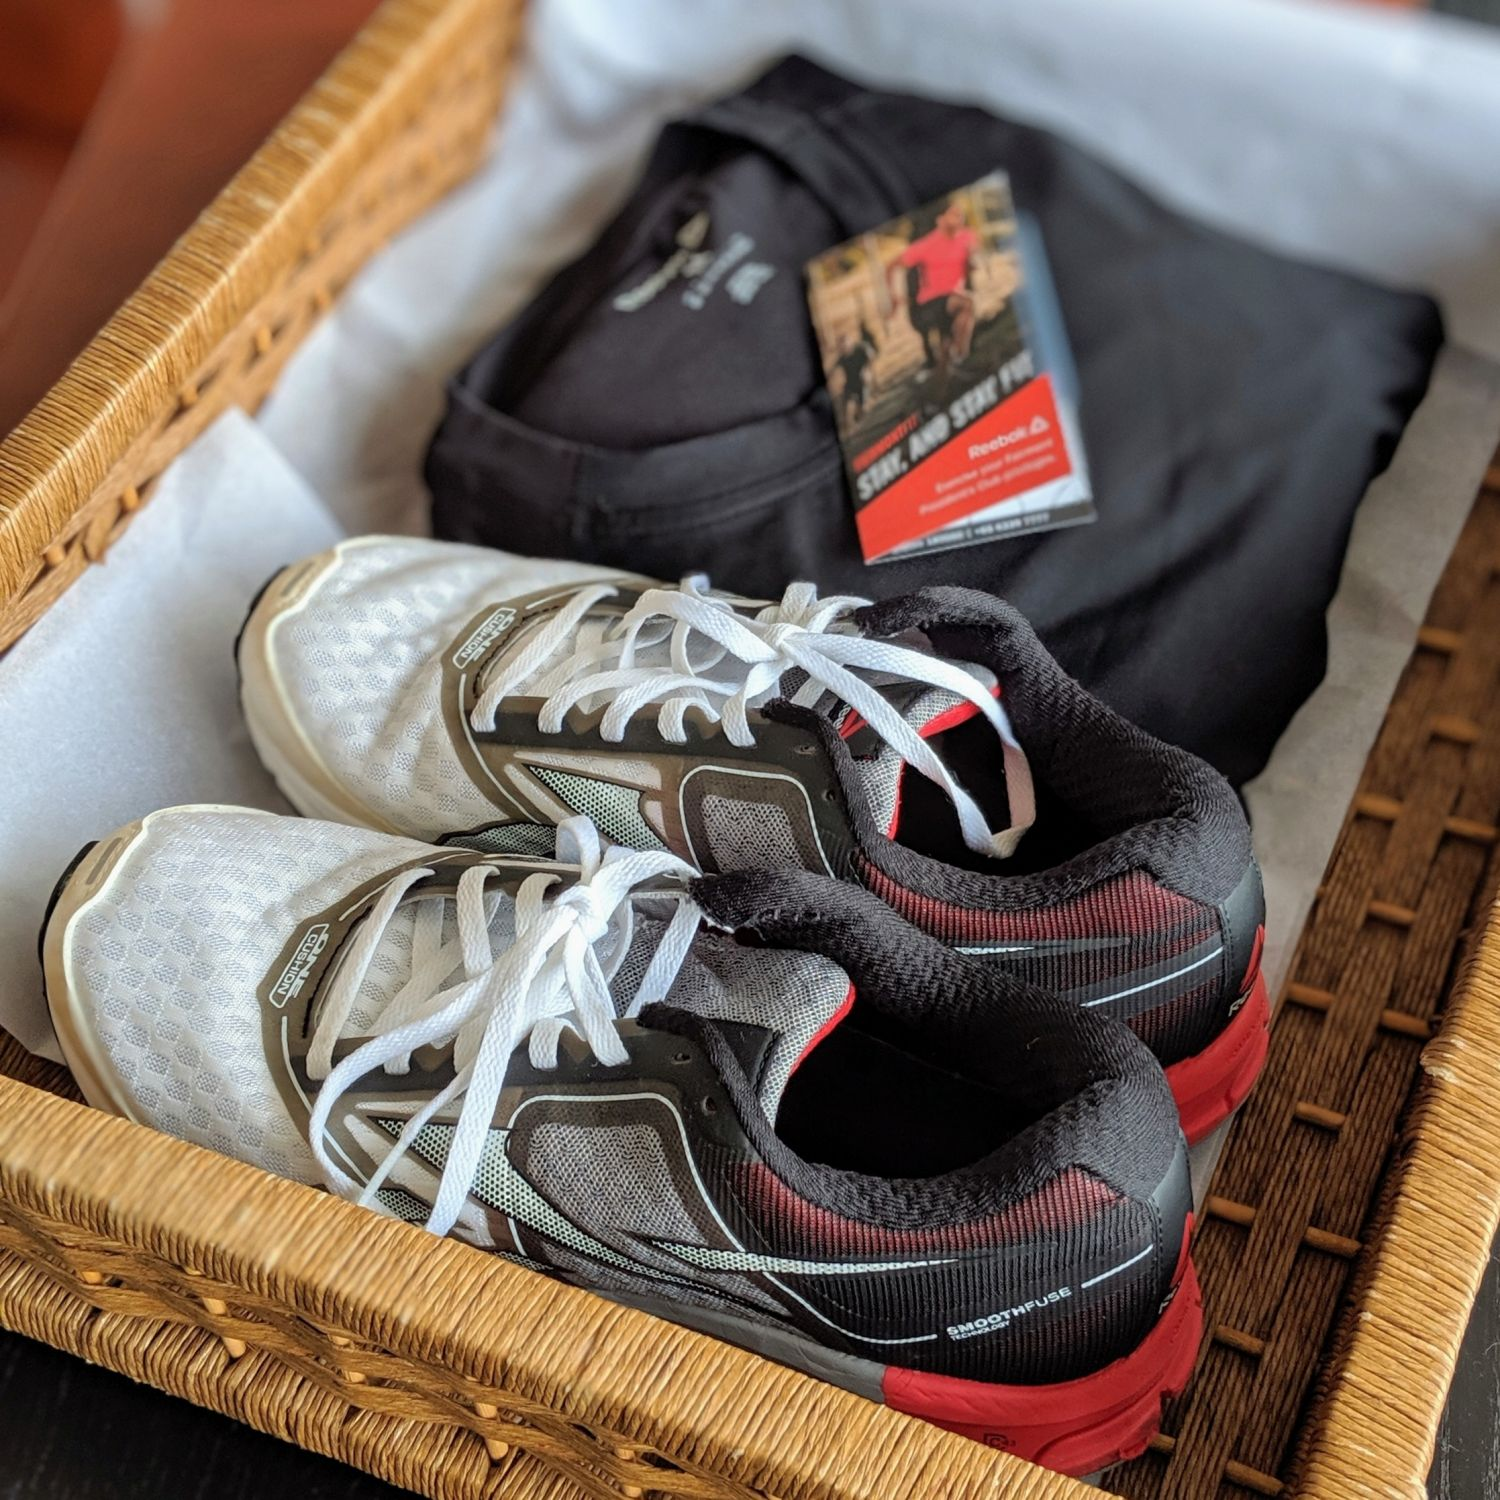 fairmont singapore signature gold king suite reebok fitness kit